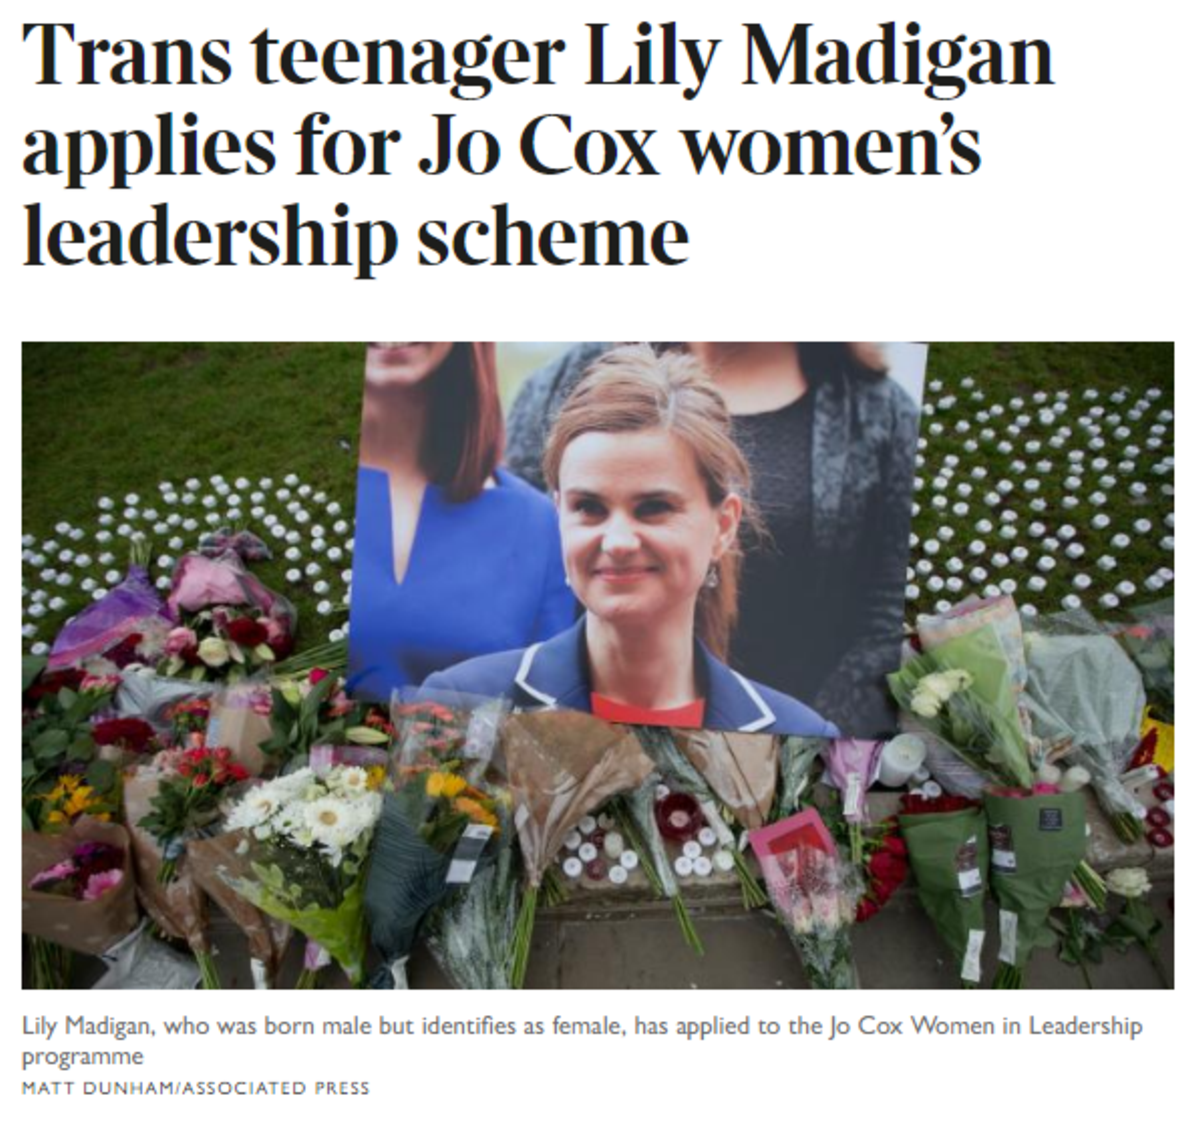 Dear Labour Party, Please consult ordinary women on matters that affect us. Jo Cox Women in Leadership Programme. Fair Play For Women.